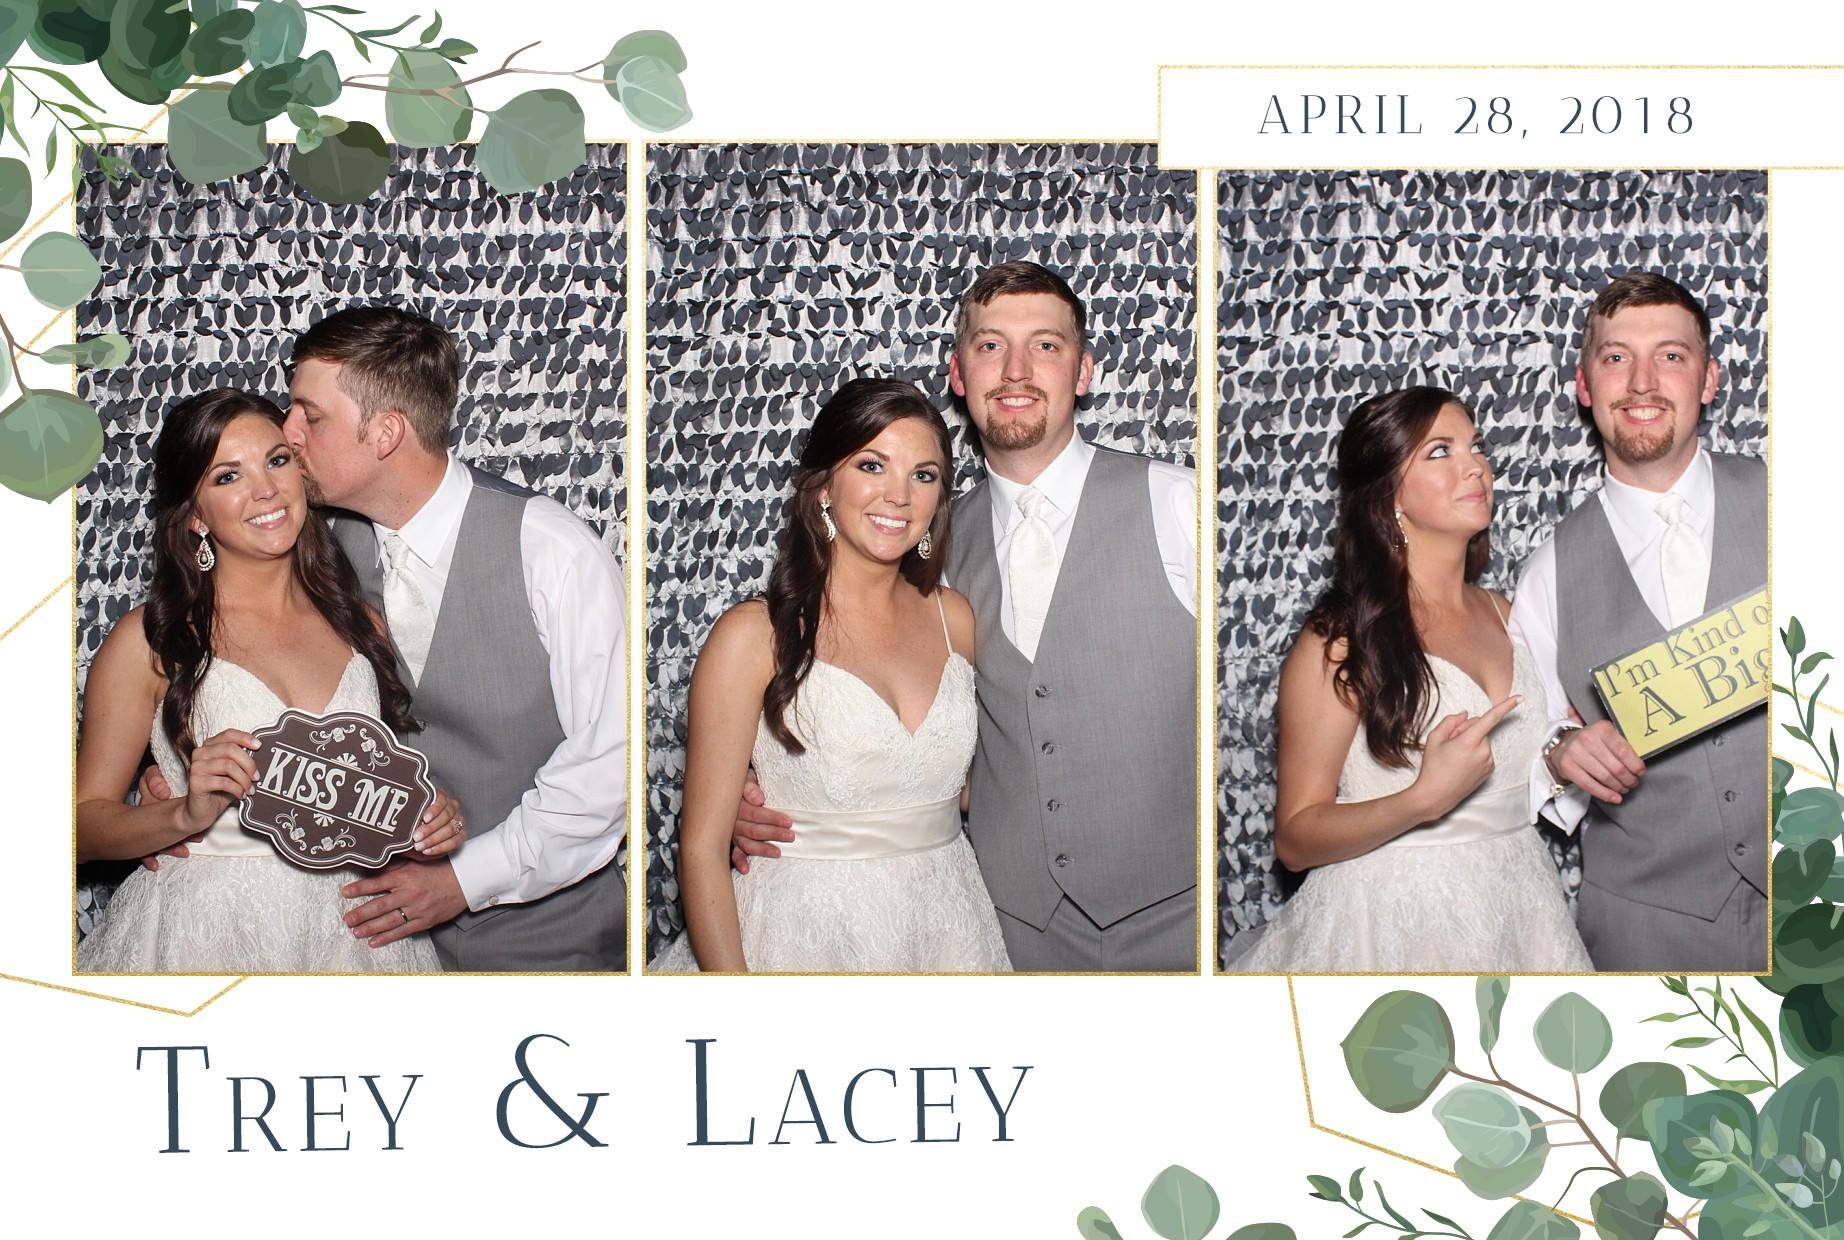 trey and lacey.jpg